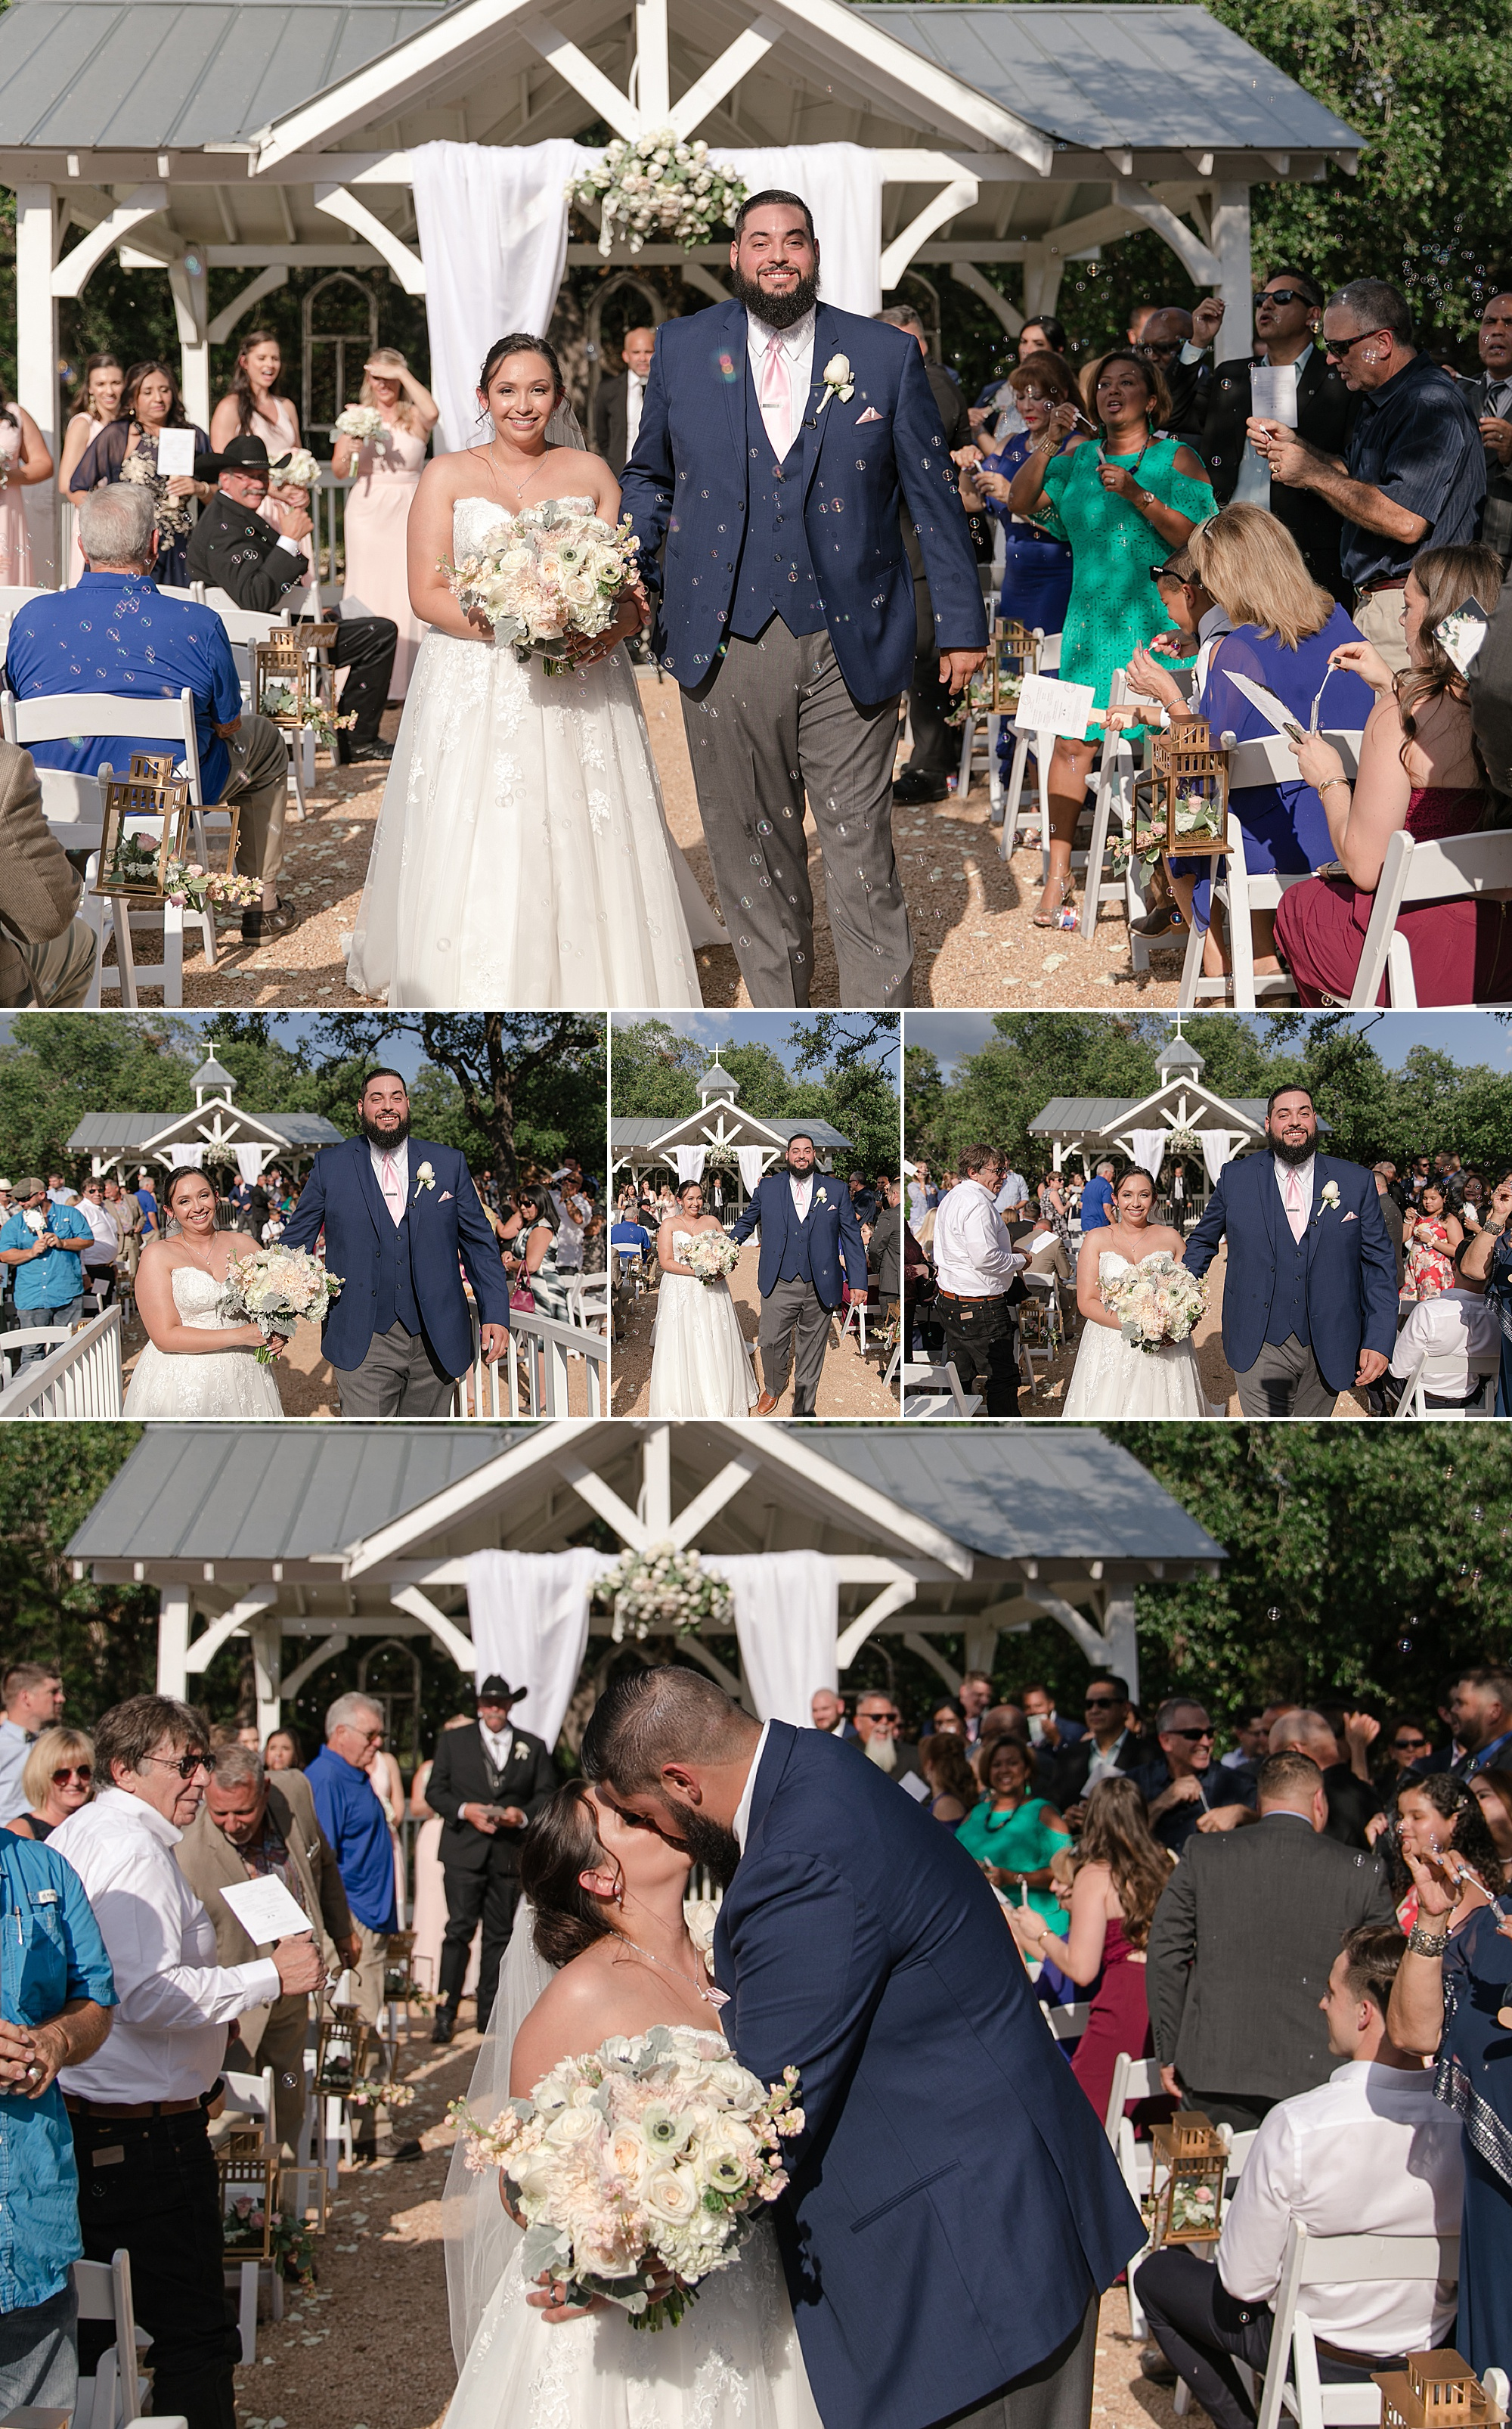 Wedding-Photographer-Bulverde-Texas-Western-Sky-Event-Venue-Carly-Barton-Photography_0046.jpg